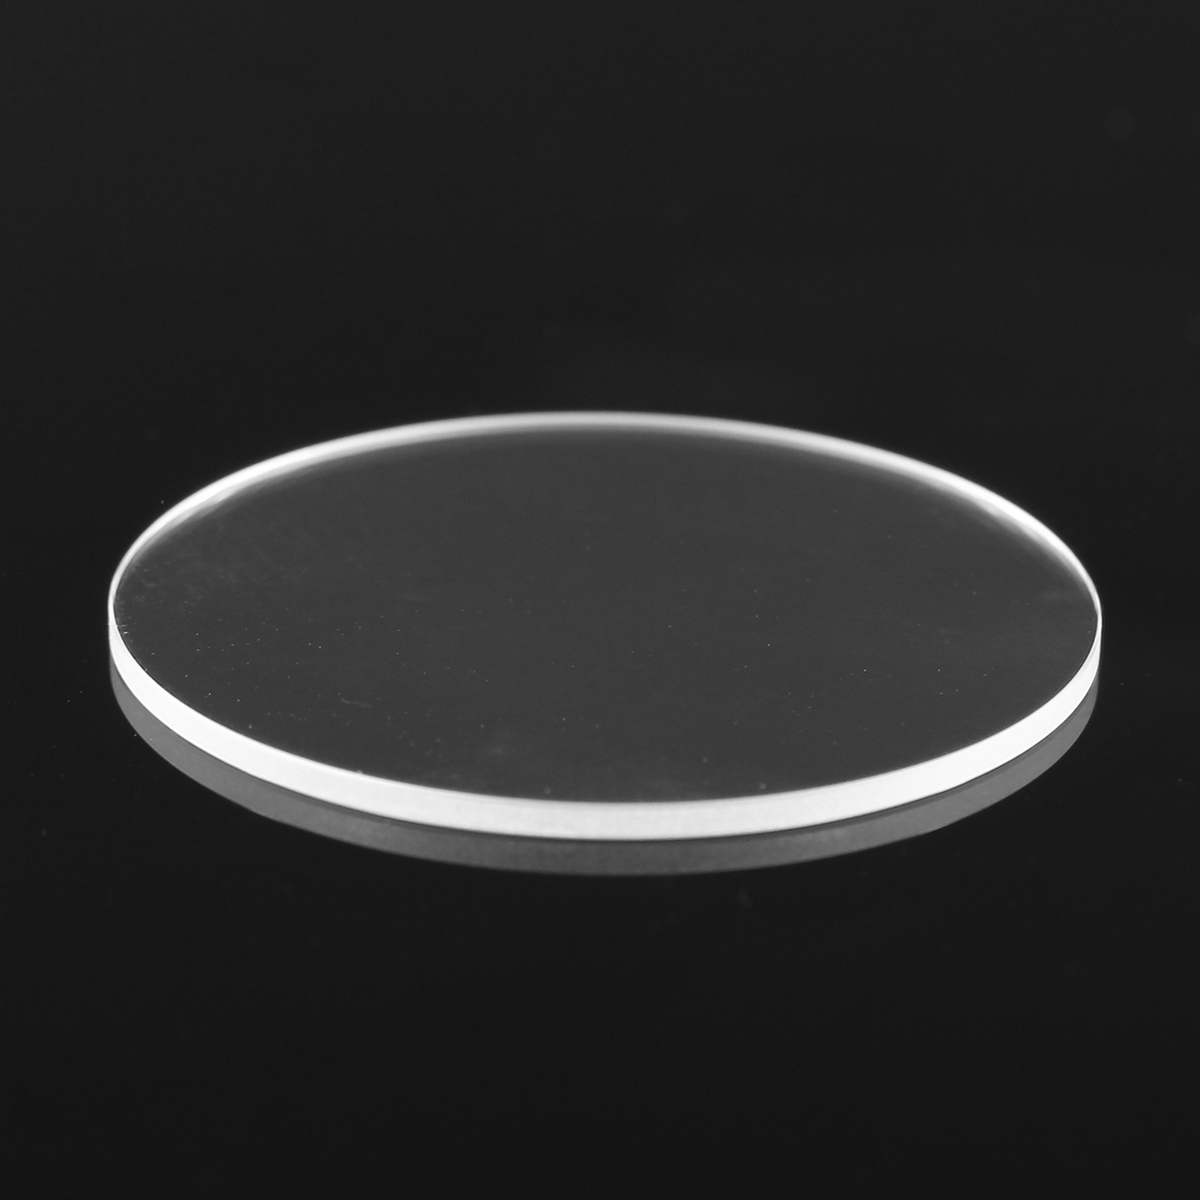 1.2mm Thick Flat Sapphire Watch Glass Anti scratch Smooth Round Transparent Crystal Glass For Watch Repair Size 28/29/30/31mm Pakistan